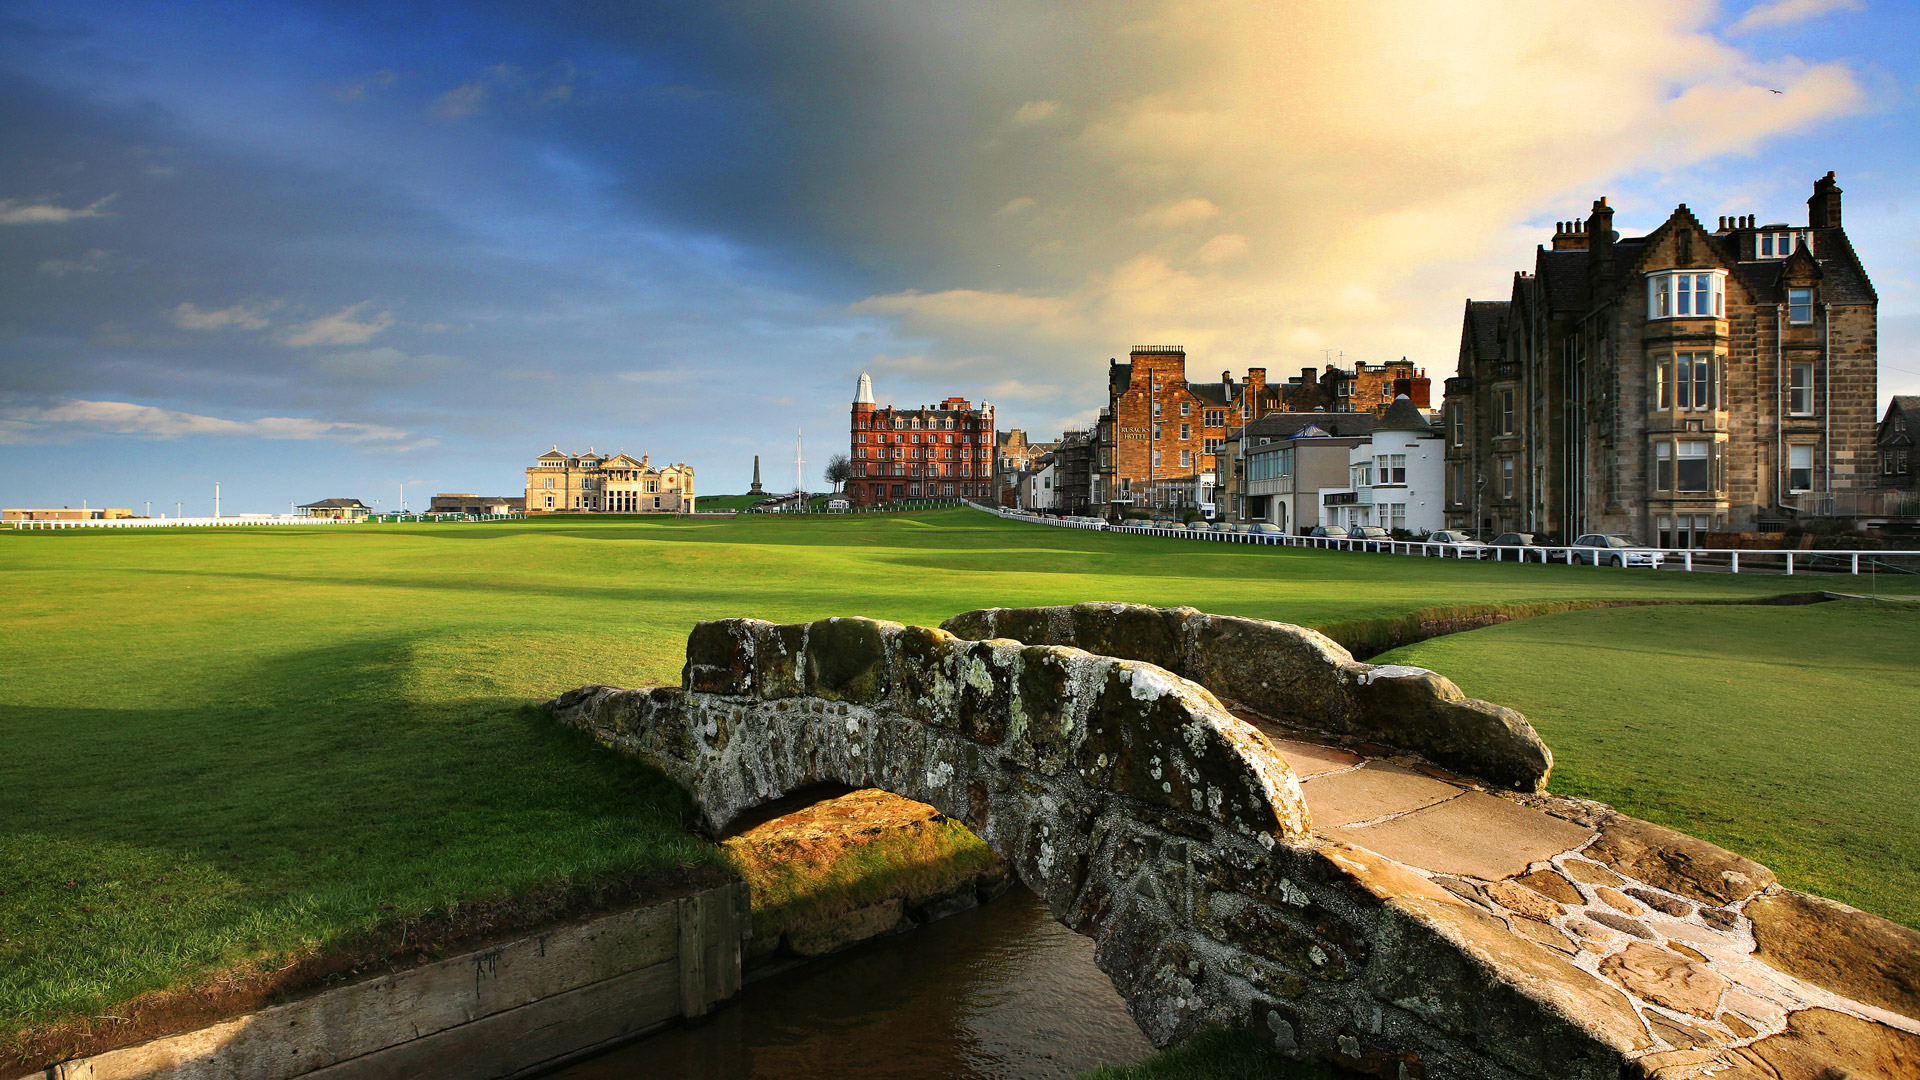 Download St Andrews Golf Wallpaper Gallery Glitter Wallpaper Creepypasta Choose from Our Pictures  Collections Wallpapers [x-site.ml]